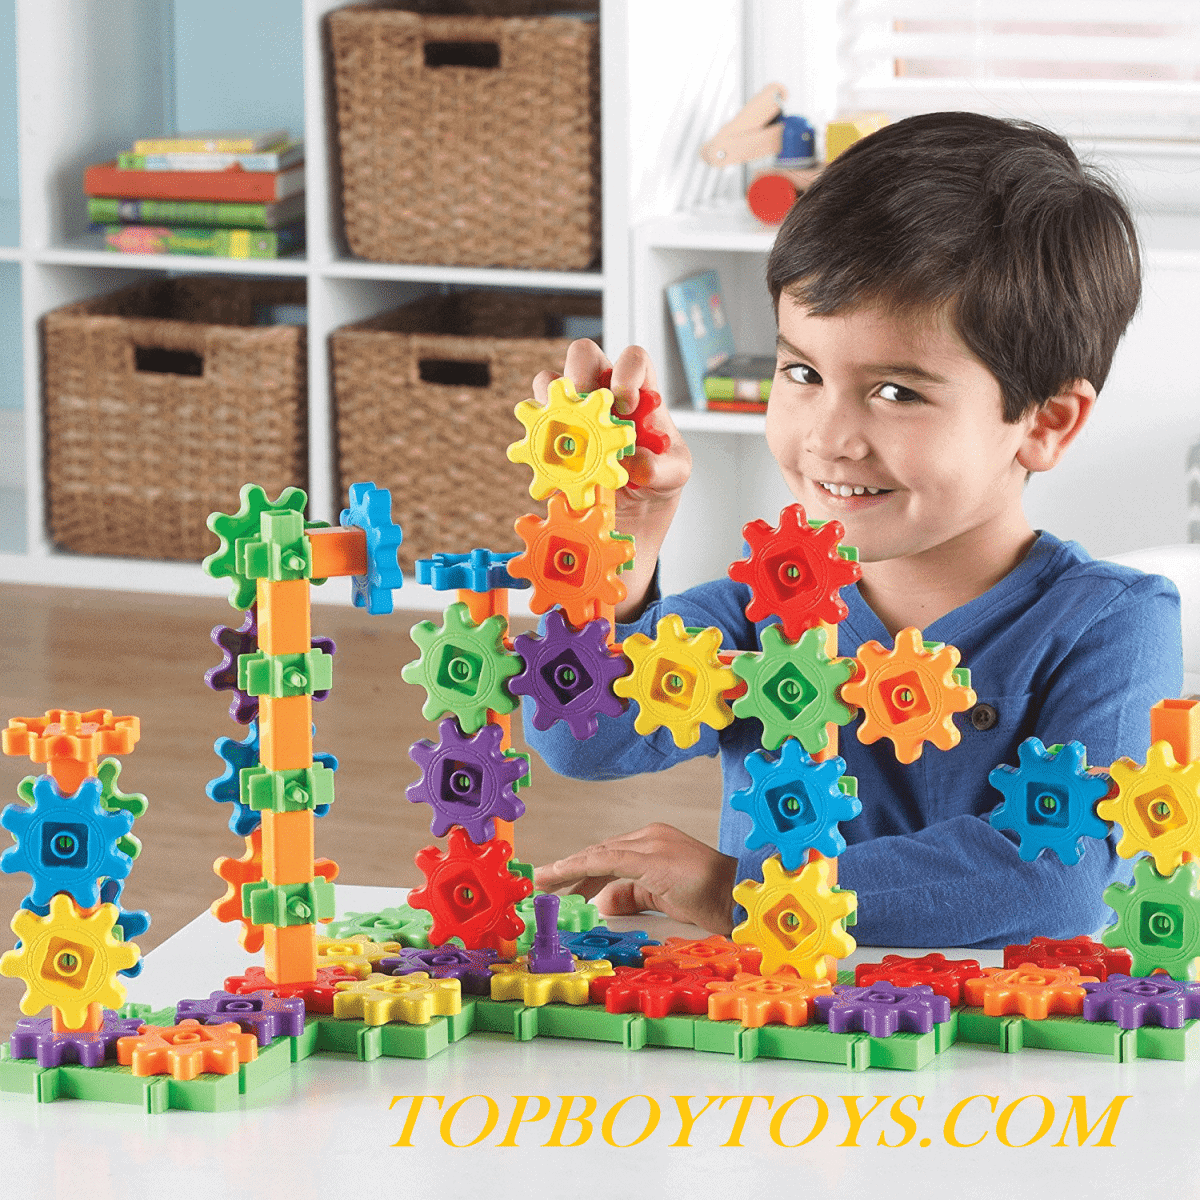 Toys For Boys 4 Years Old : Best toys and gift ideas for year old boys to buy